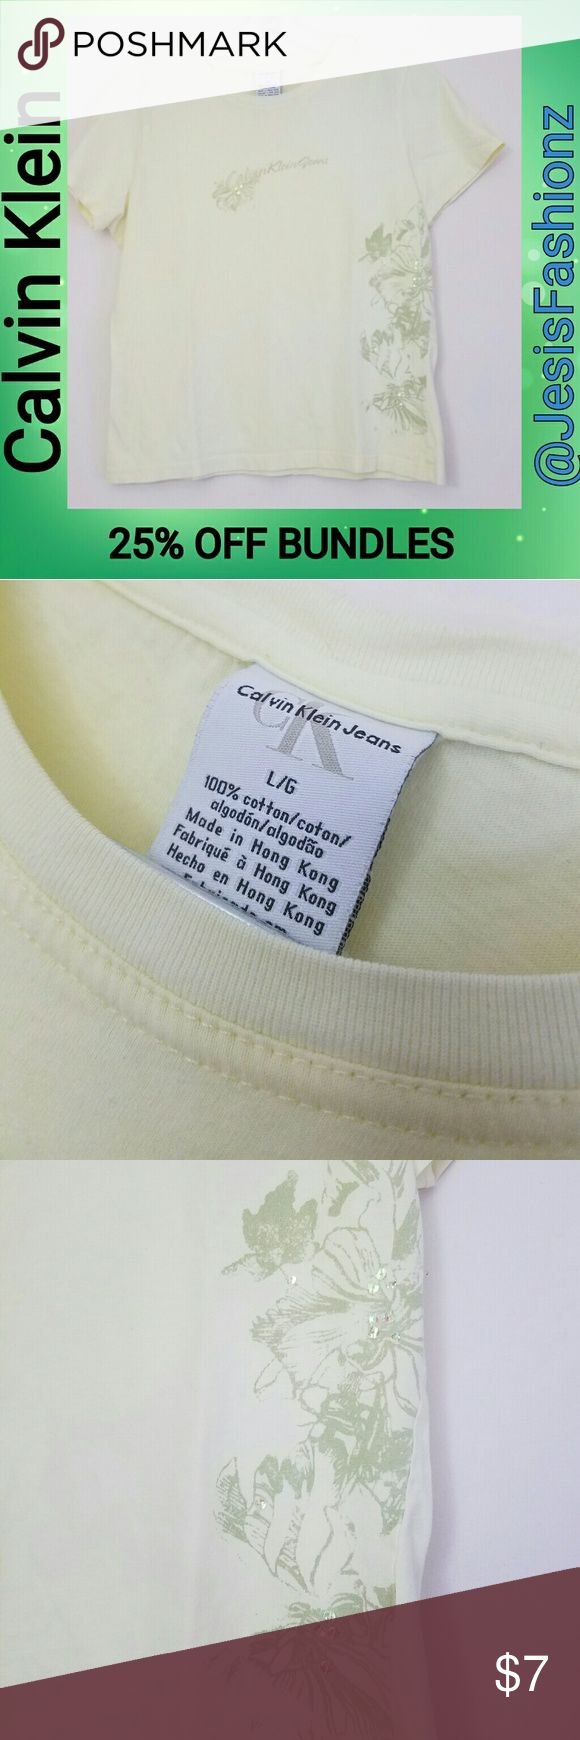 Calvin Klein Light Yellow Tropical Print Tee MEDIUM~Light almost pale yellow tee with tropical leaf print along the left side (when worn) and the name across the front. There is a tiny spot on the back side. It may come out in the wash, I'm not sure, I just saw it now during photos. I tried to show it, but it's not very visible  **25% OFF BUNDLES OF 3 OR MORE ITEMS** **REASONABLE OFFERS ACCEPTED** *ALL JEWELRY IS NWT/NWOT/UNUSED VINTAGE* ALL CLOTHING IS NWT/GENTLY WORN & CHECKED FOR ANY…